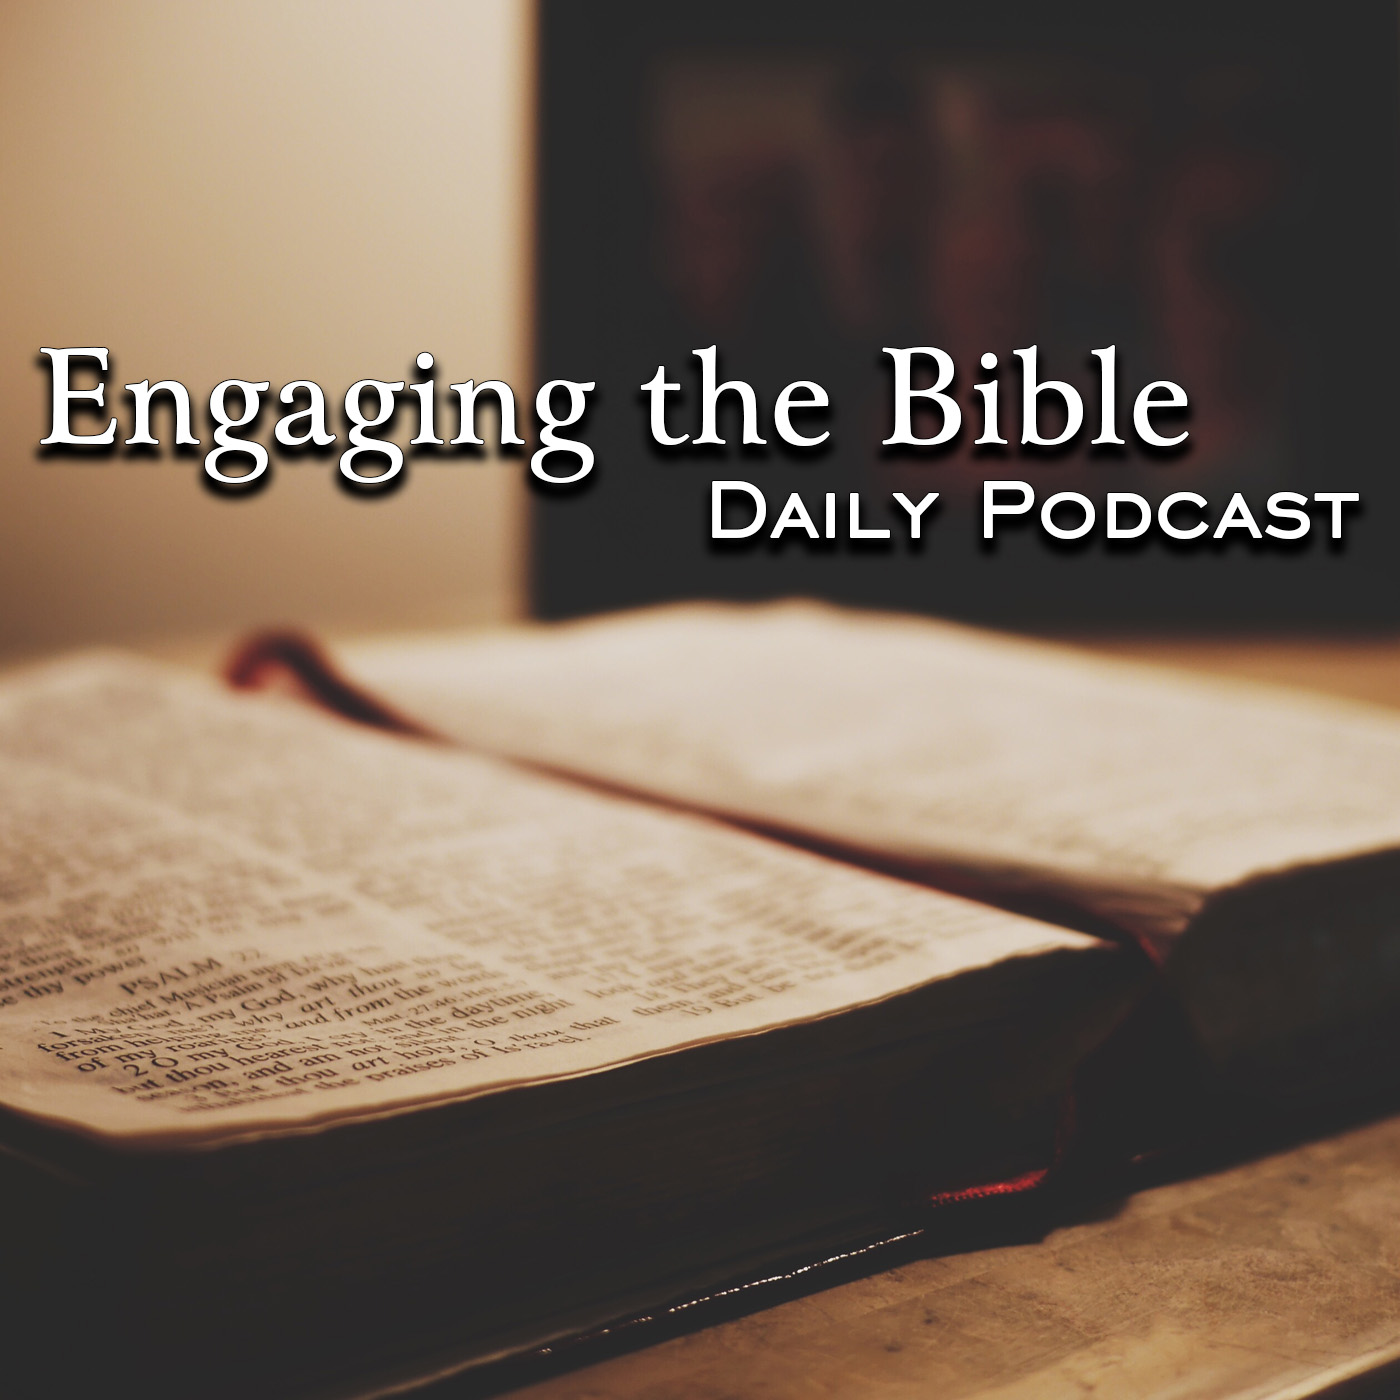 Engaging the Bible Daily Podcast